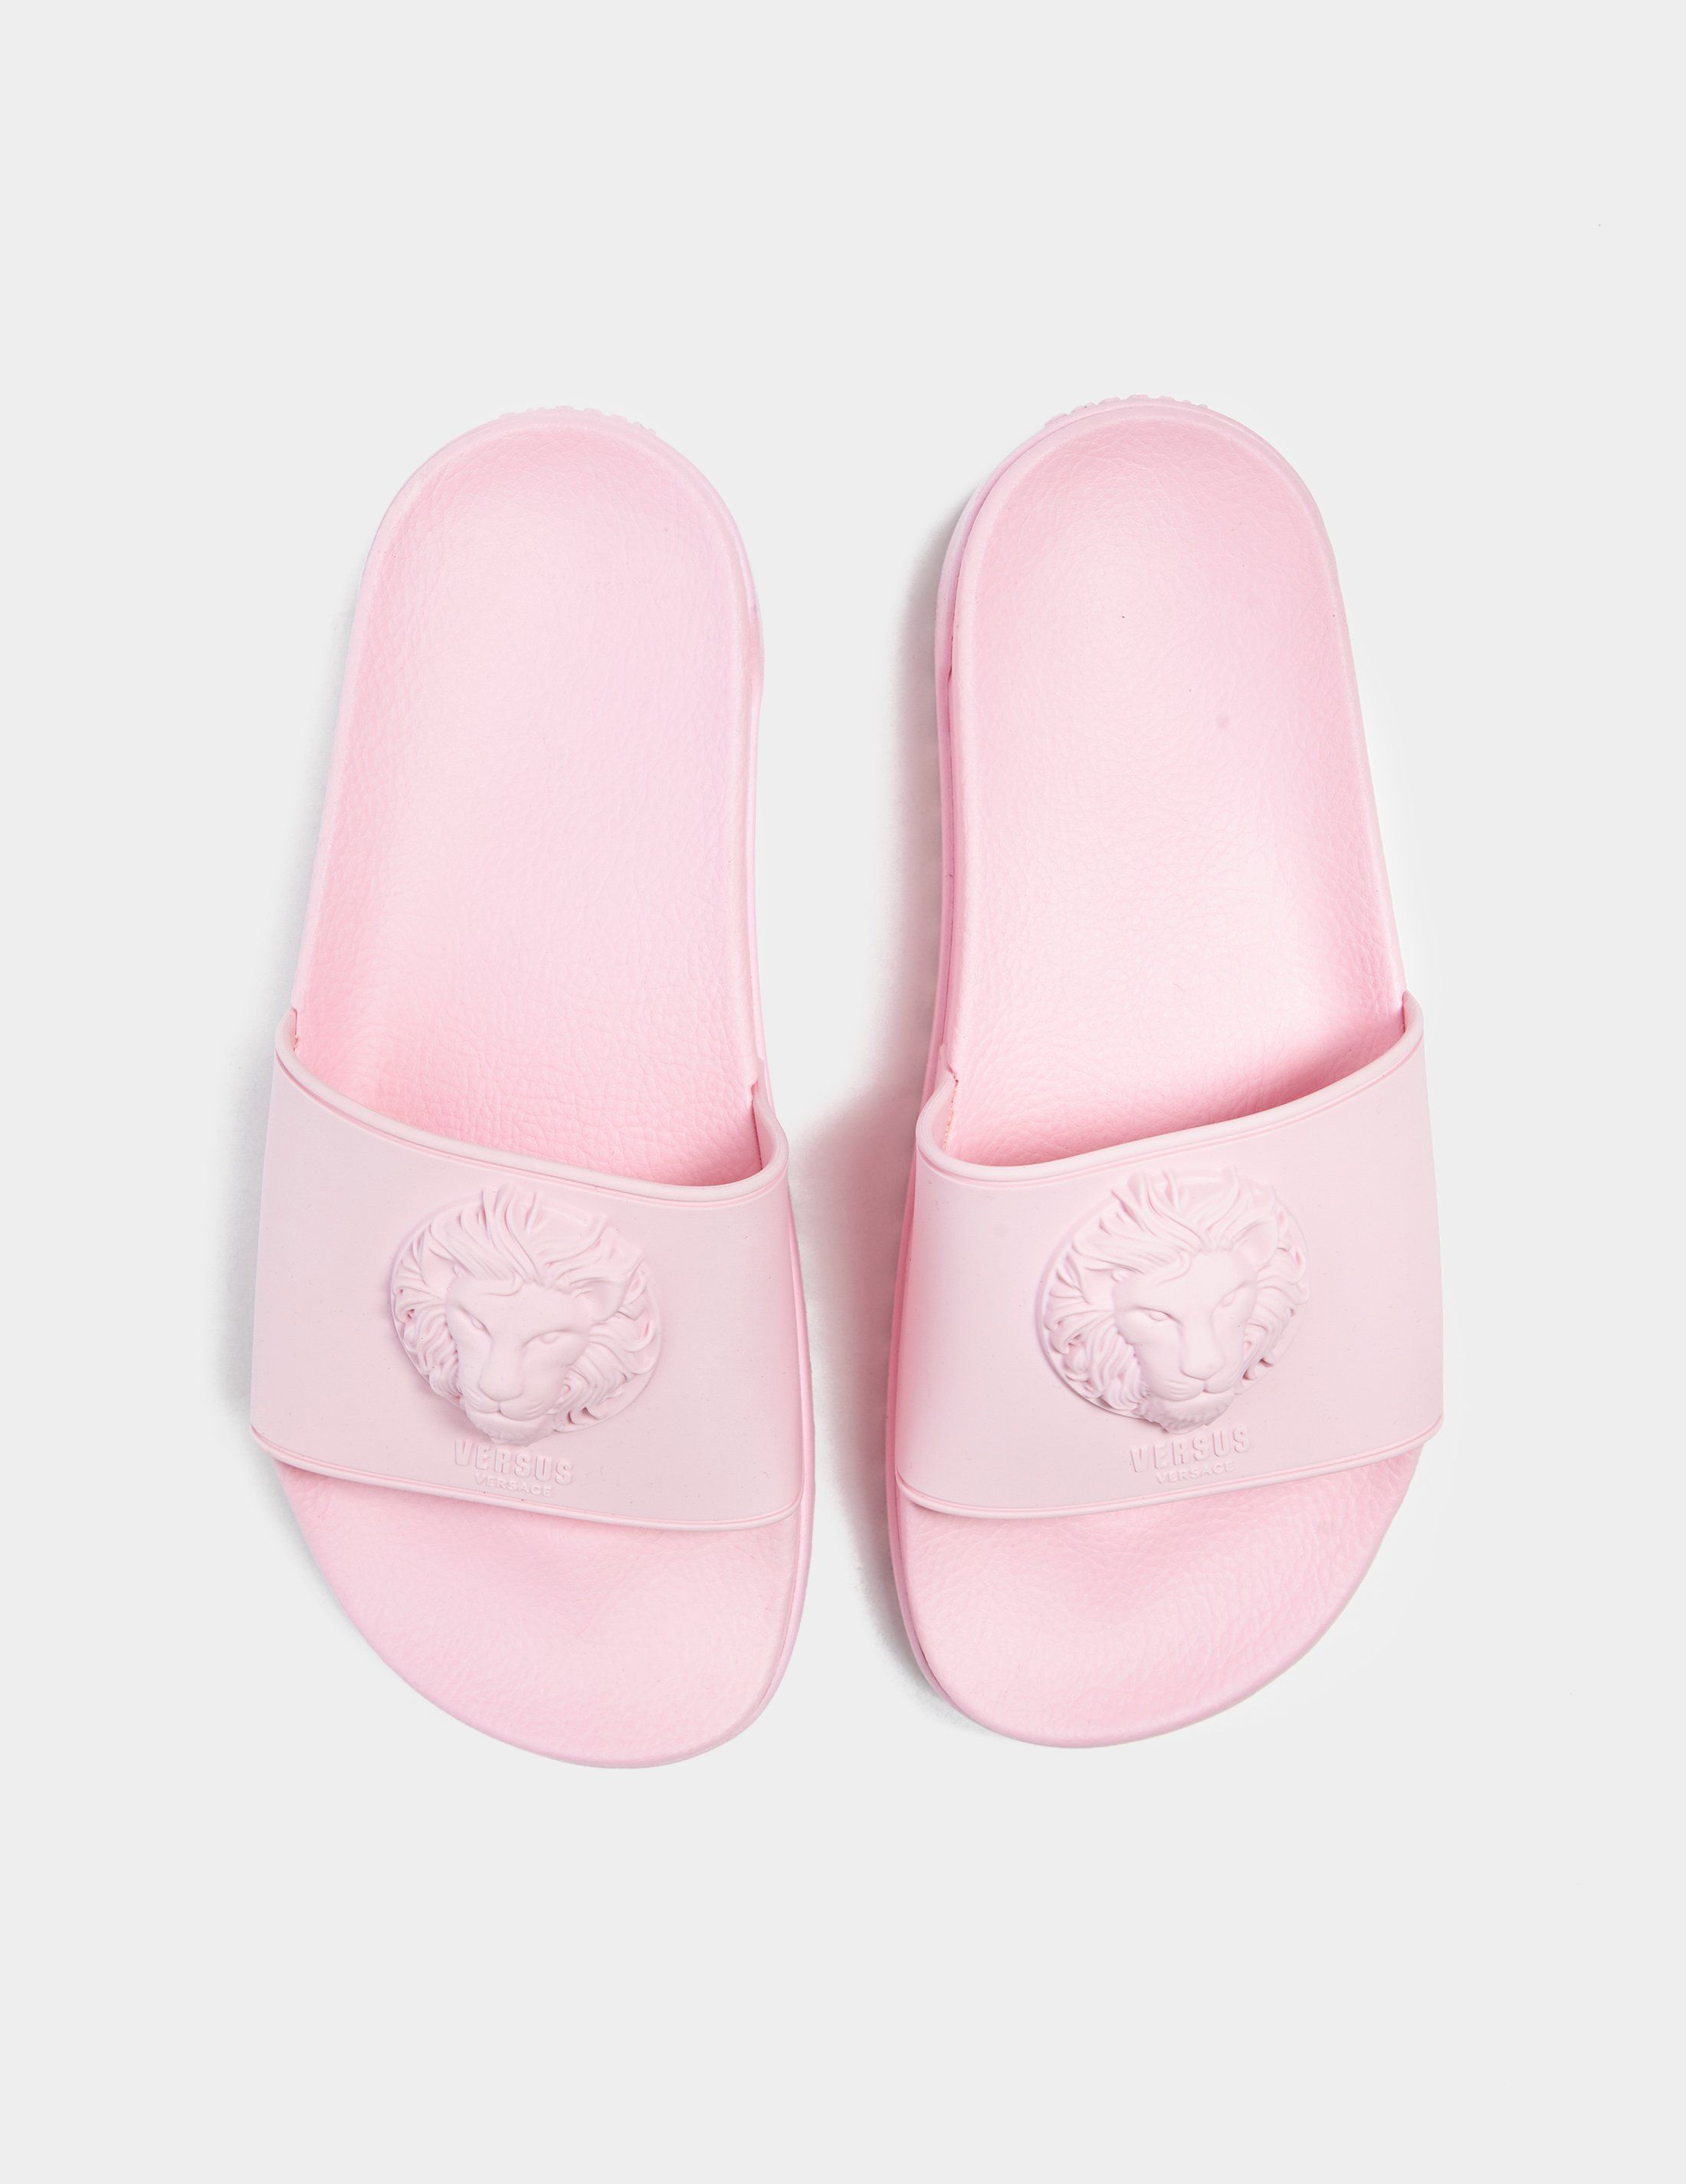 Versus Versace Lion Head Slides